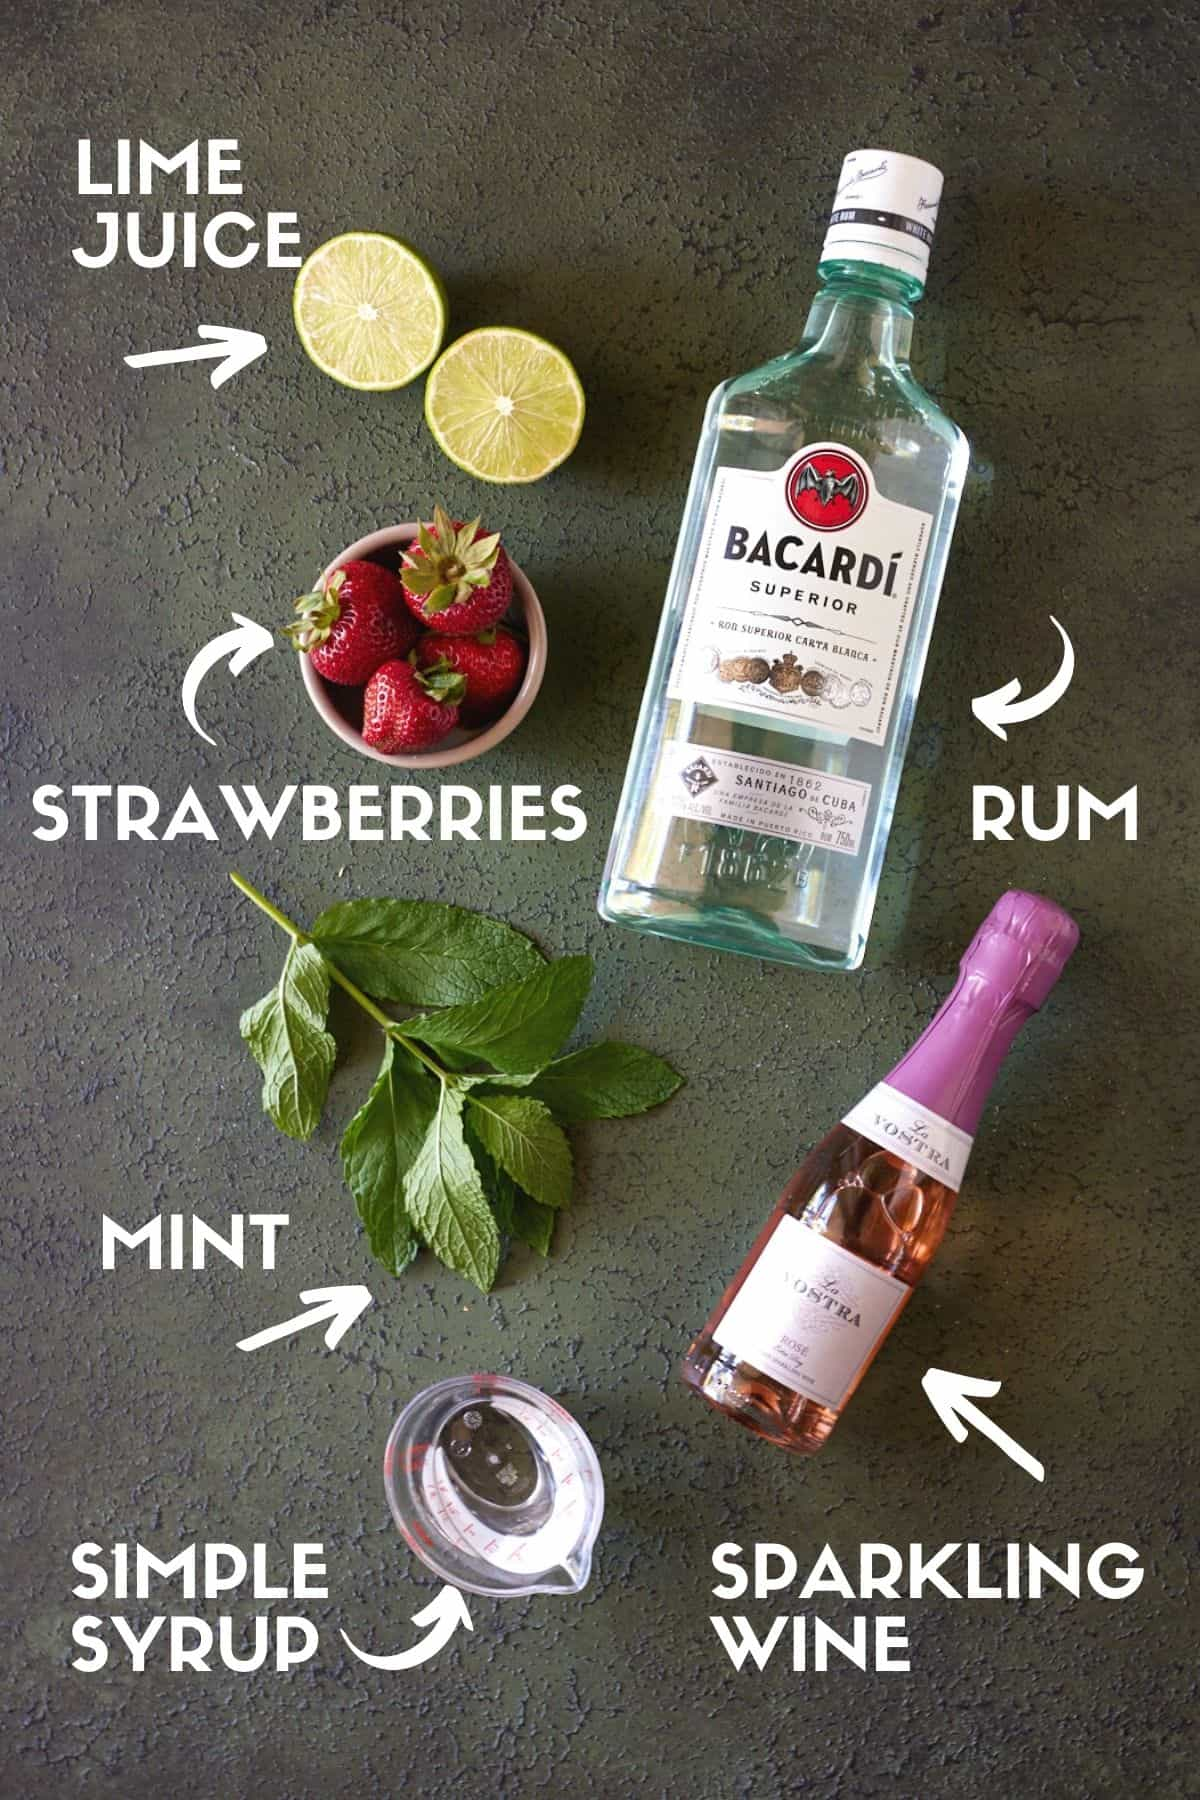 Ingredients for strawberry mojitos, including strawberries, mint, limes, rum and sparkling rosé wine.